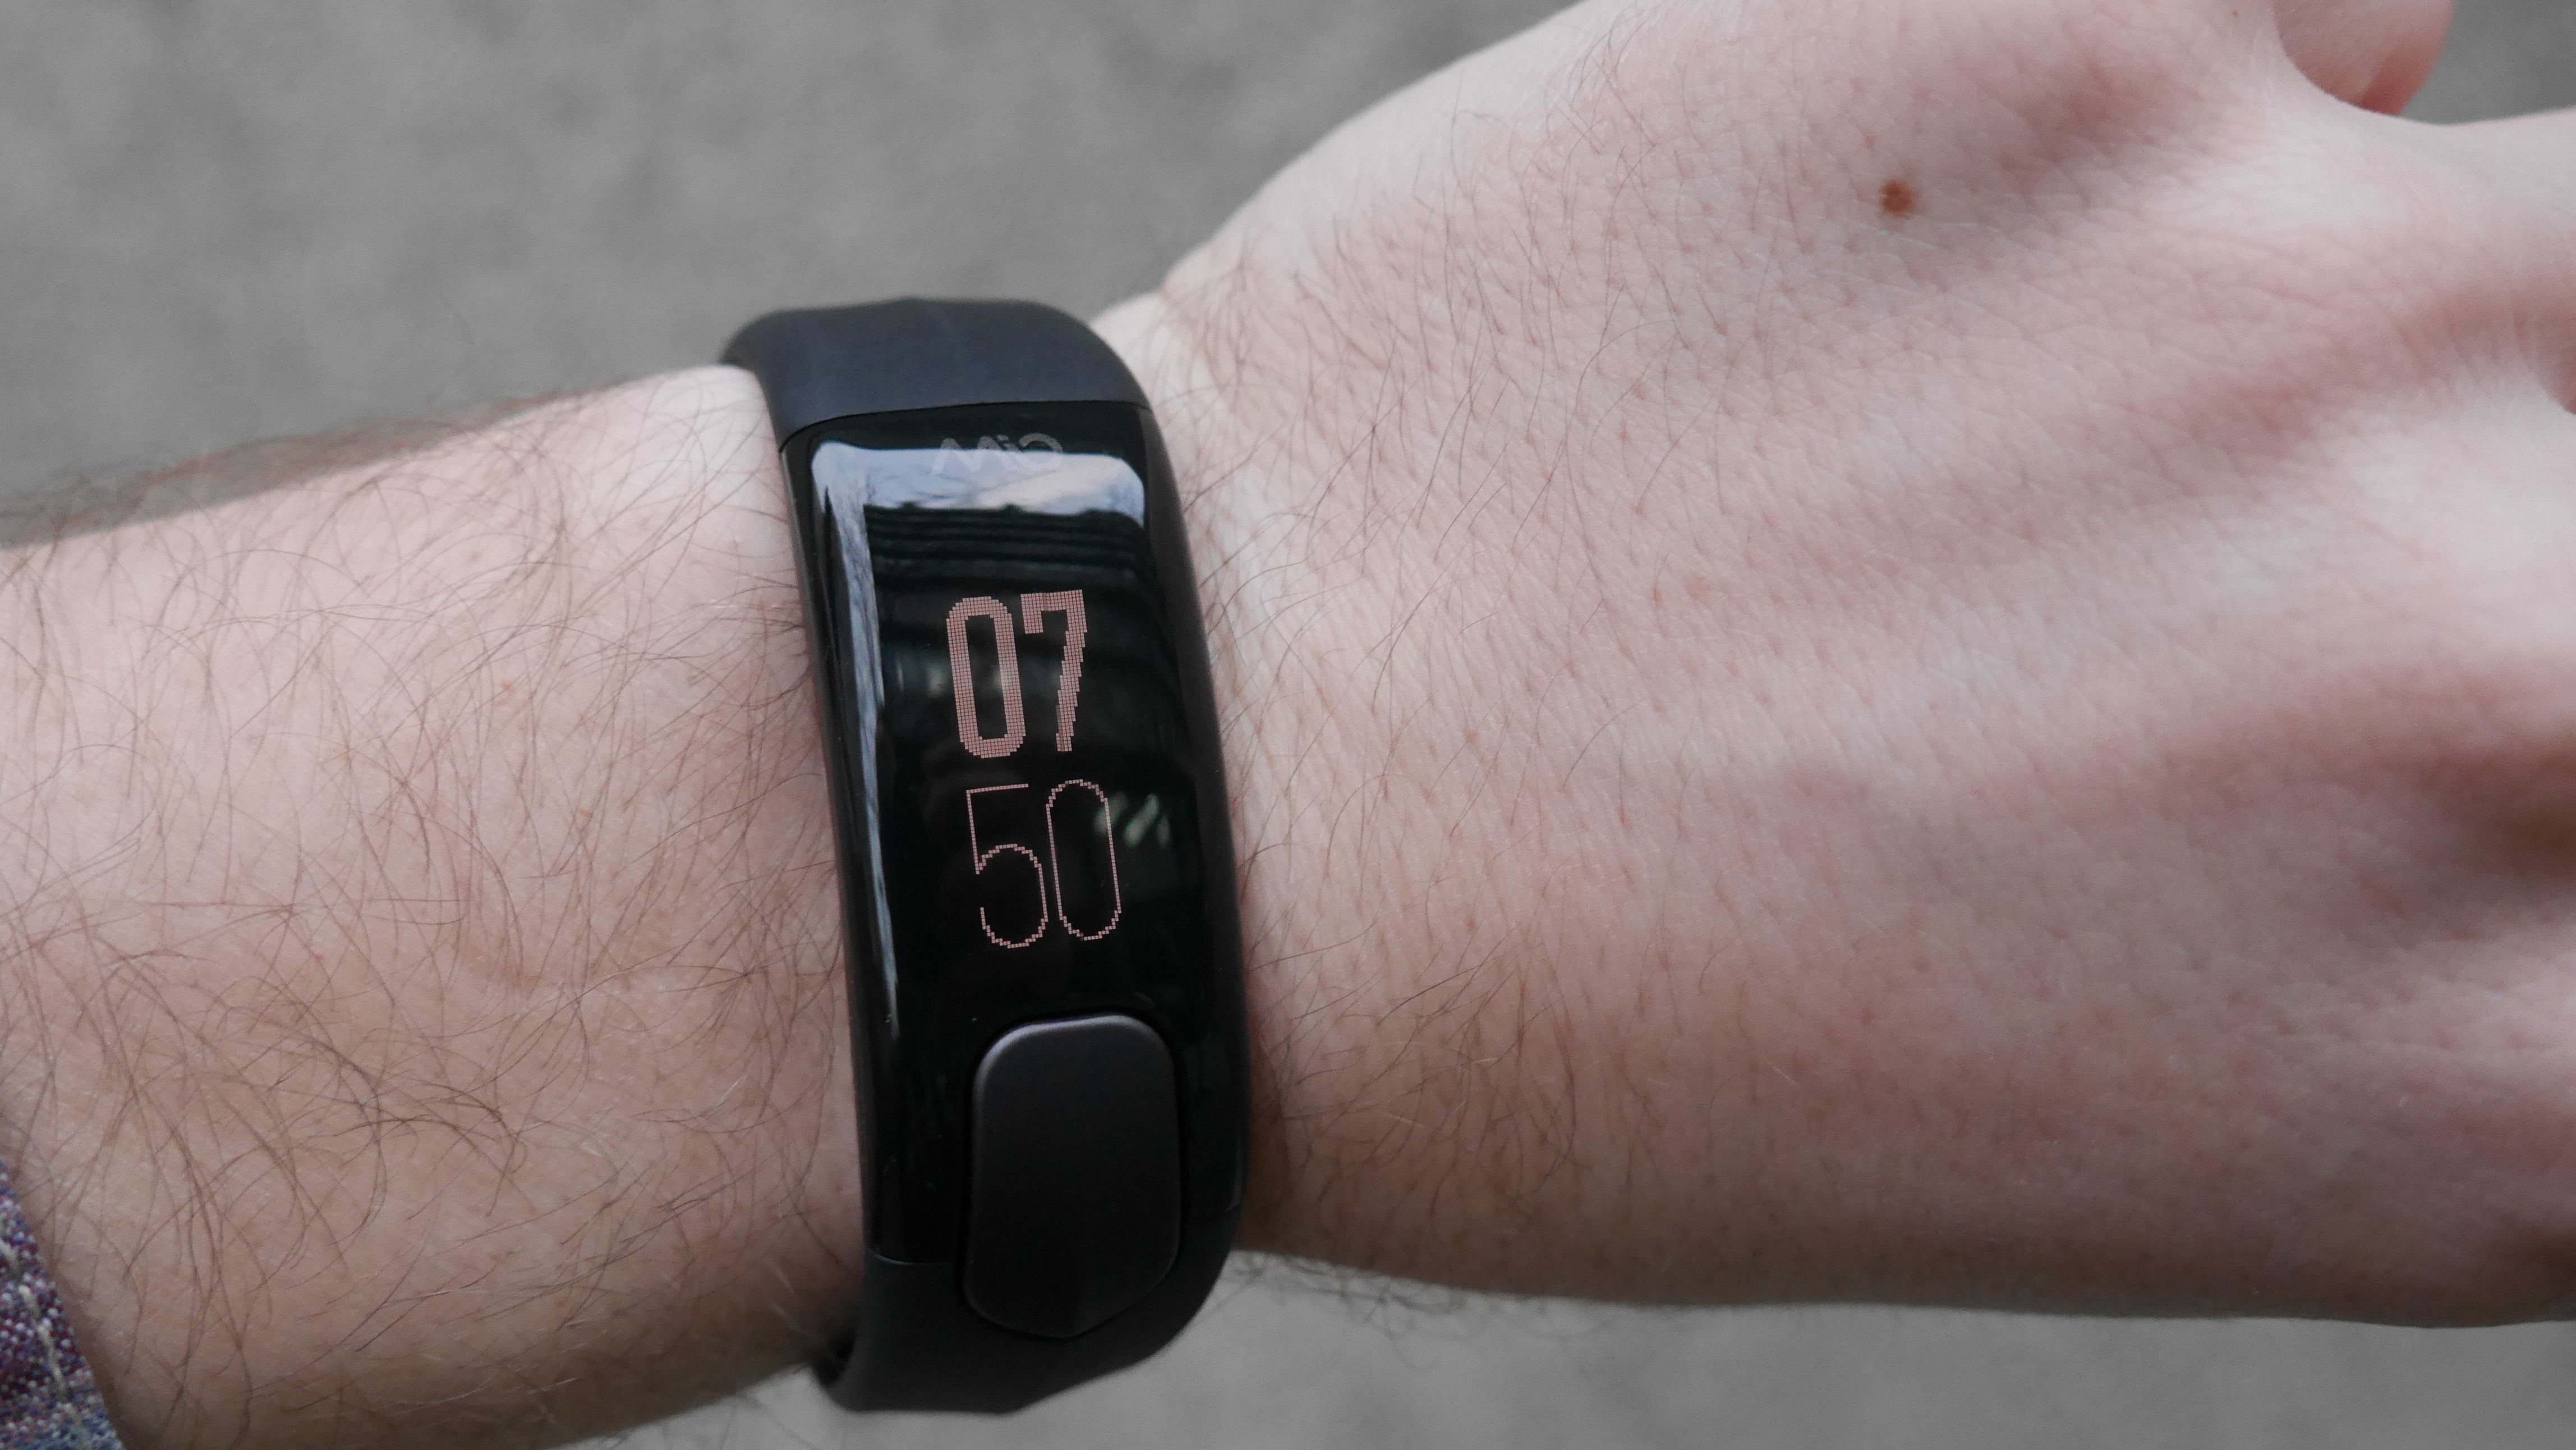 Mio Slice Fitness trackers are changing and the Mio Slice